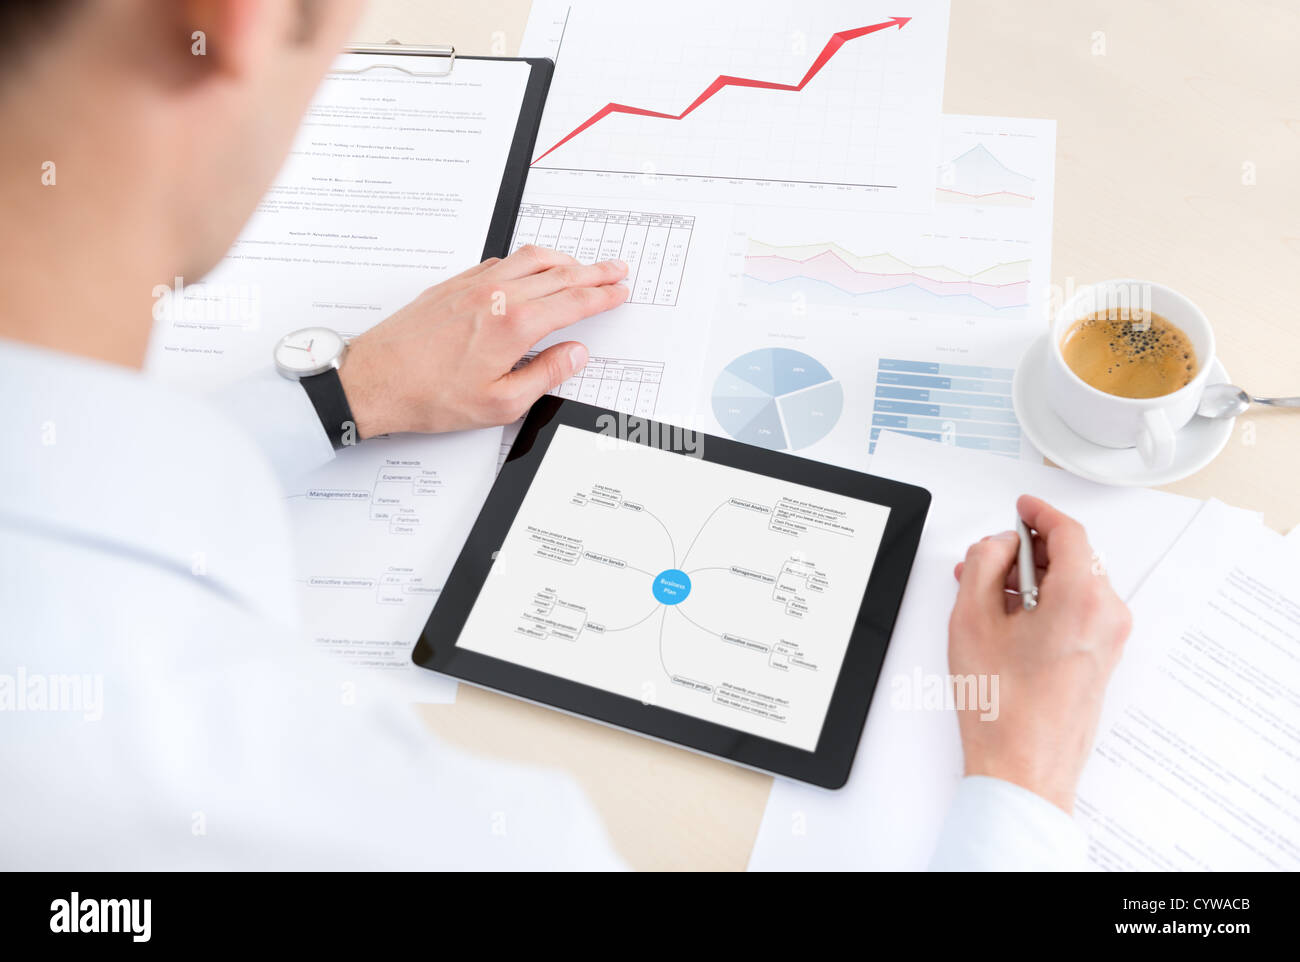 Businessman at the workplace working with documents and using modern digital tablet. - Stock Image